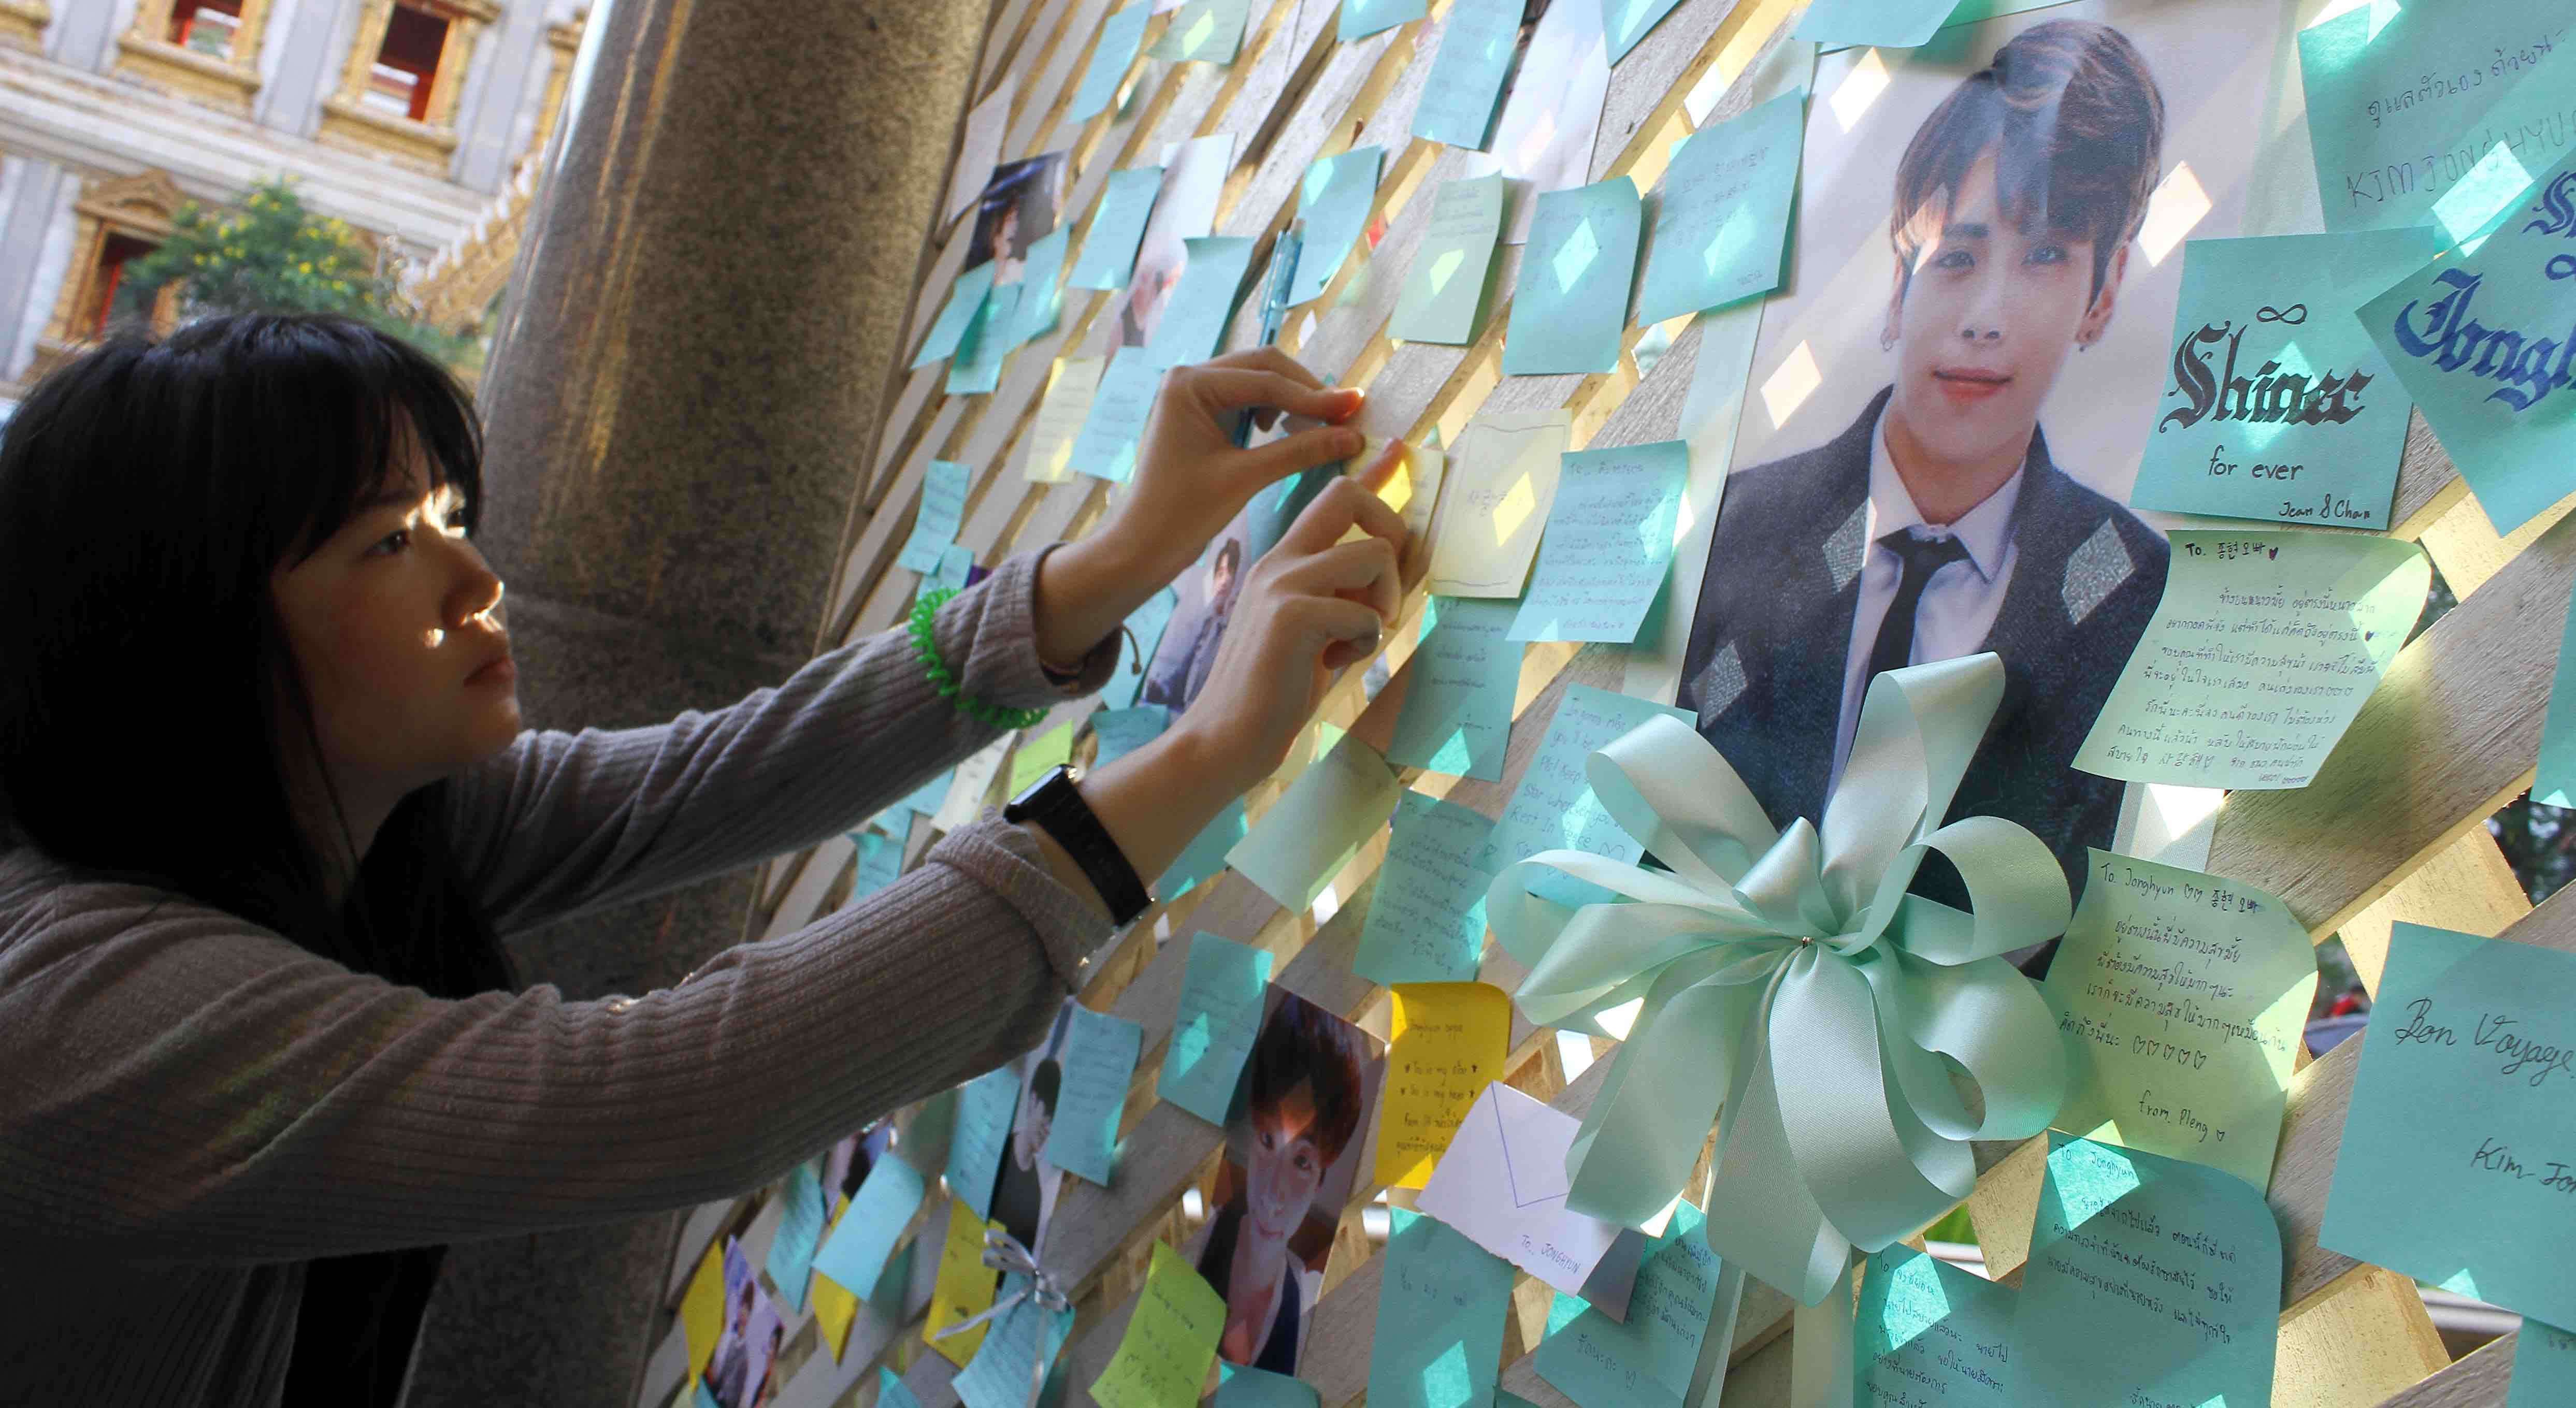 About South Korea Jonghyun And Depression In South Korea